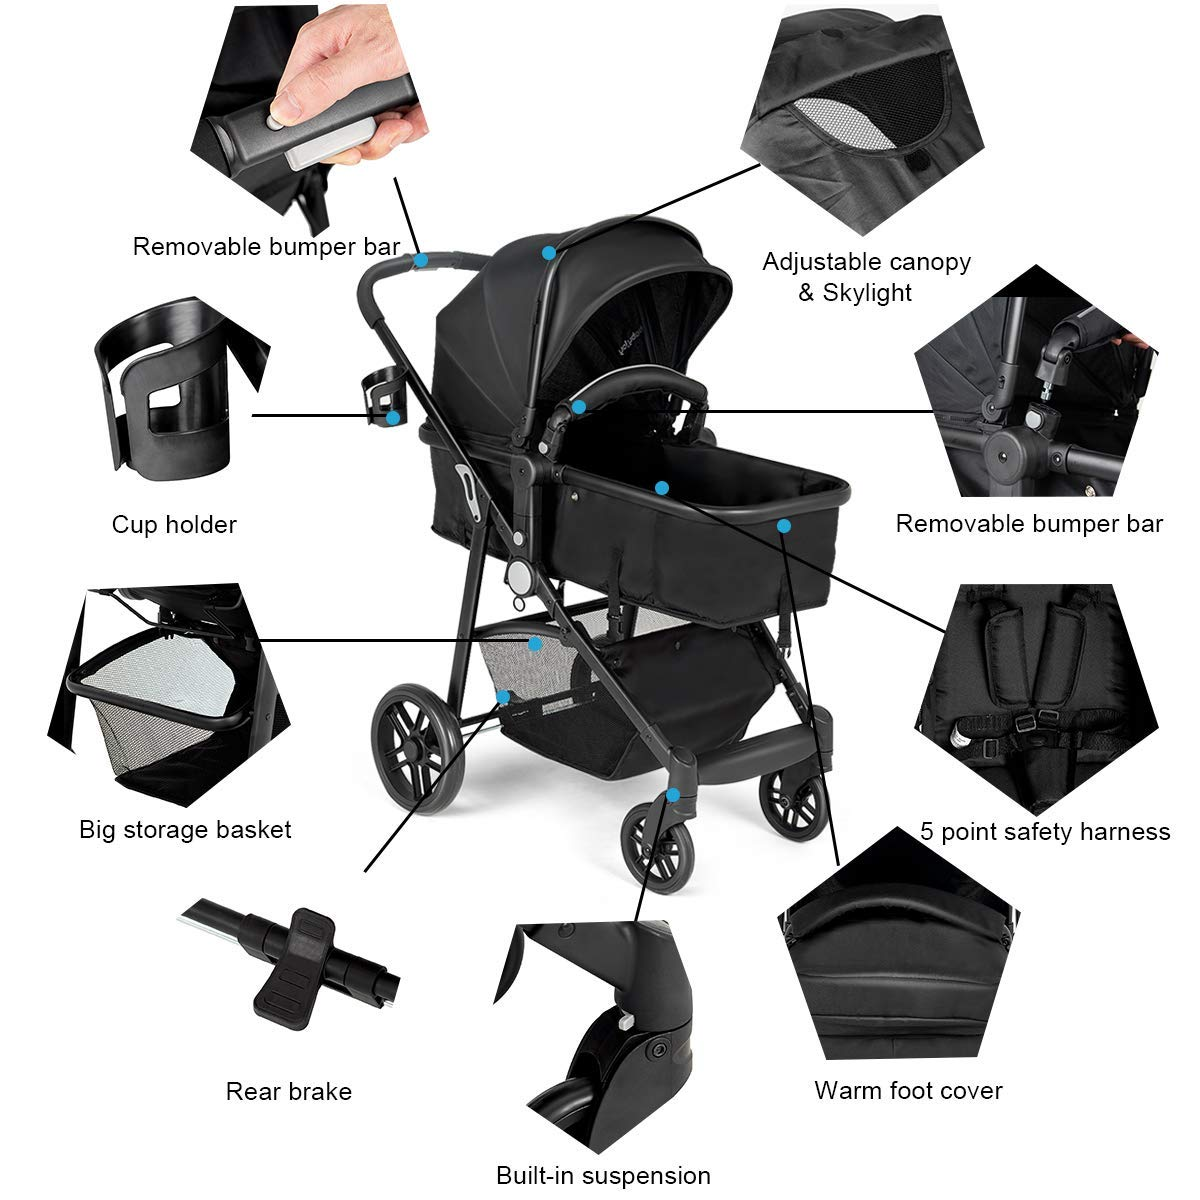 BABY JOY Baby Stroller, 2 in 1 Convertible Carriage Bassinet to Stroller, Pushchair with Foot Cover, Cup Holder, Large Storage Space, Wheels Suspension, 5-Point Harness, Deluxe Black by BABY JOY (Image #6)